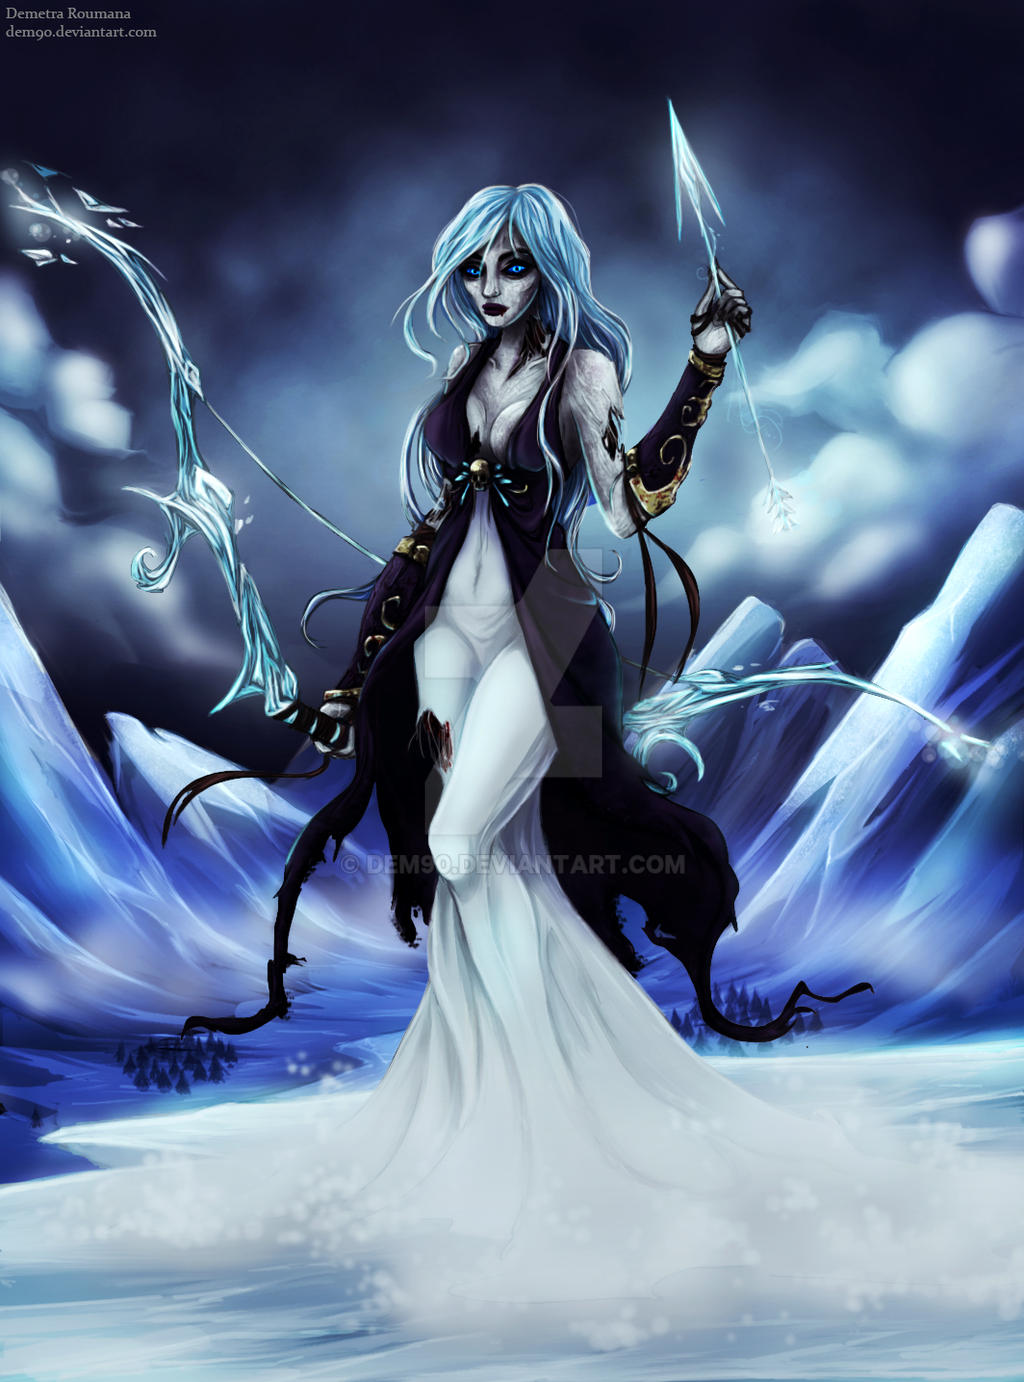 White walker Ashe by Dem90 on DeviantArt